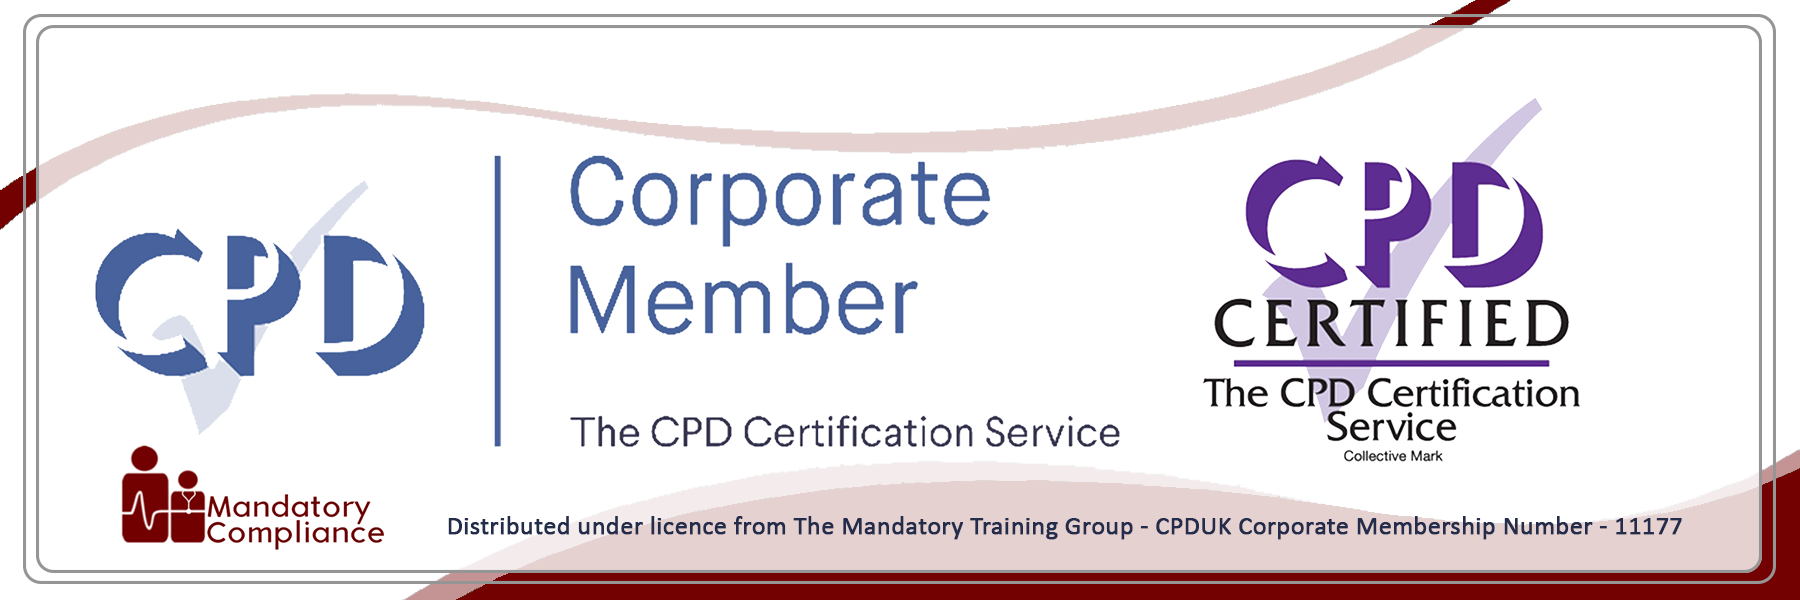 Equality, Diversity and Inclusion - Online Training Course - CPD Accredited - Mandatory Compliance UK -